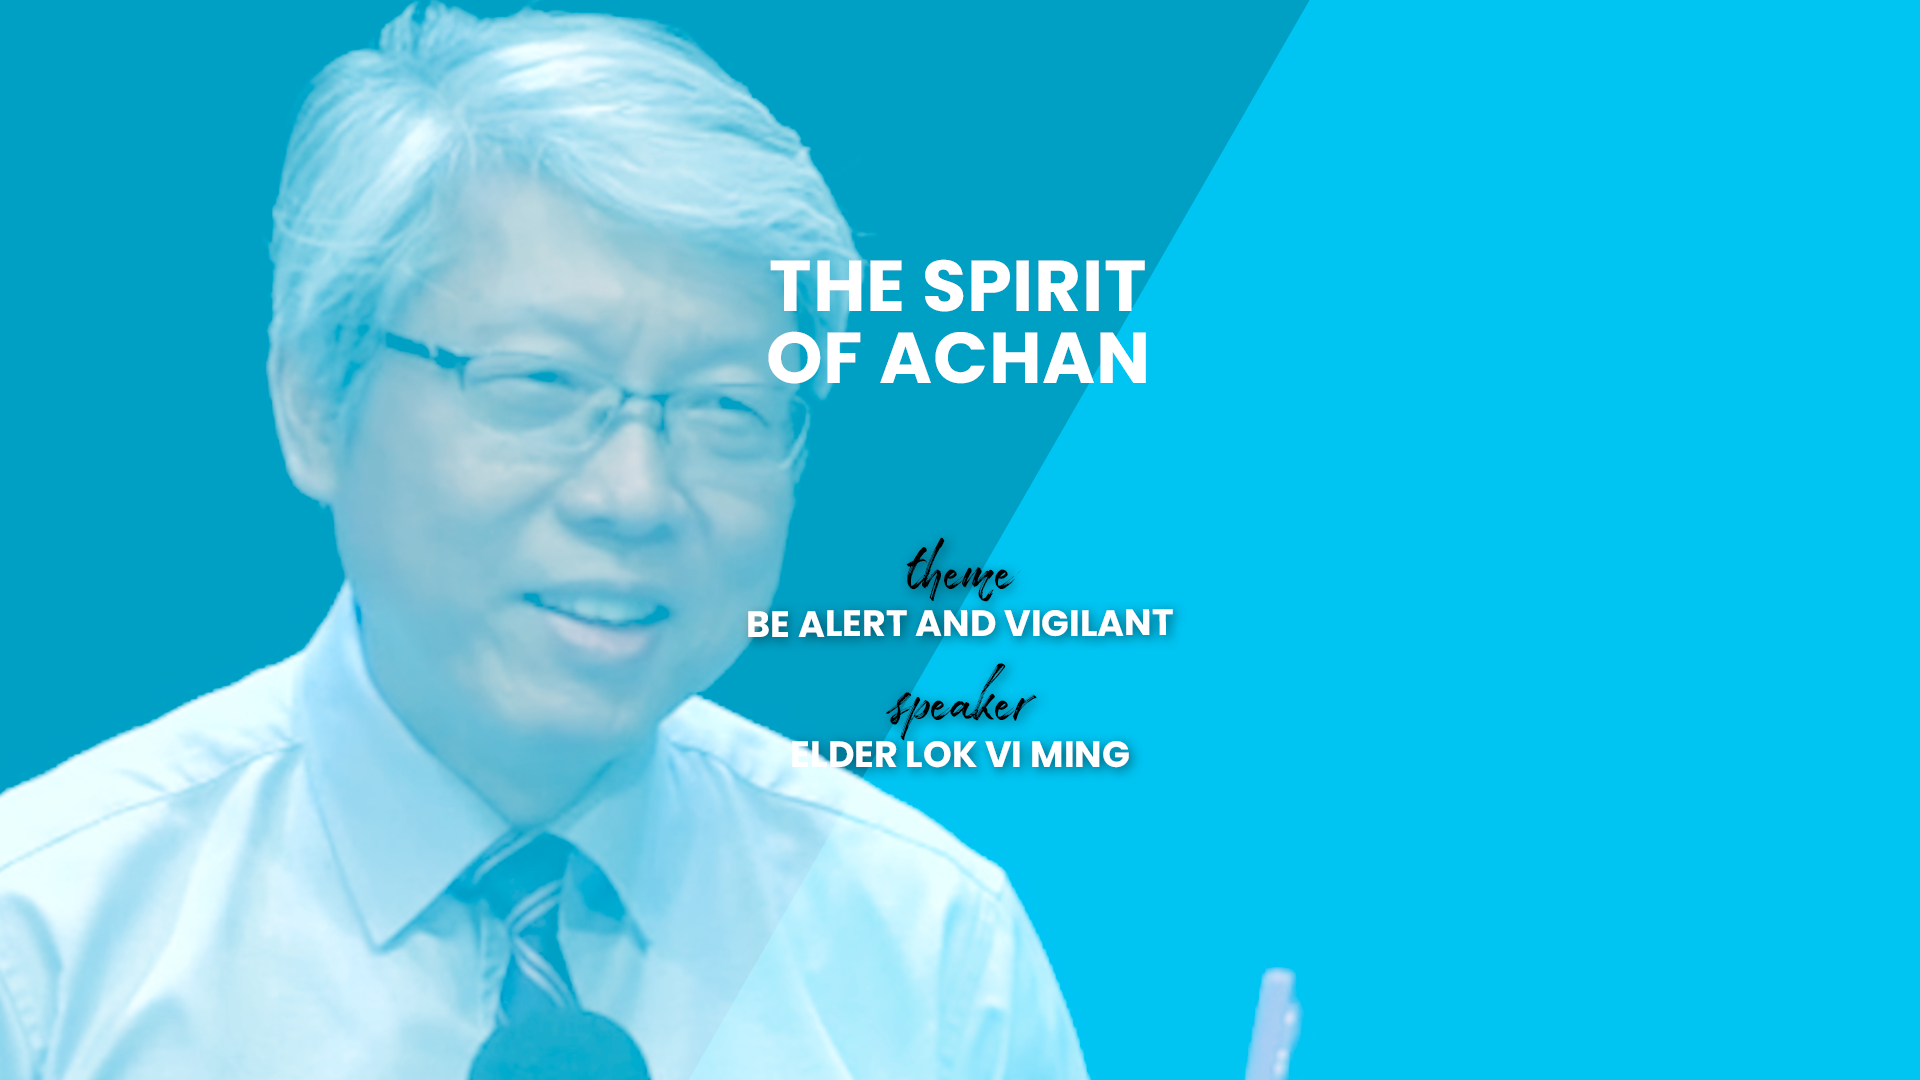 The Spirit of Achan